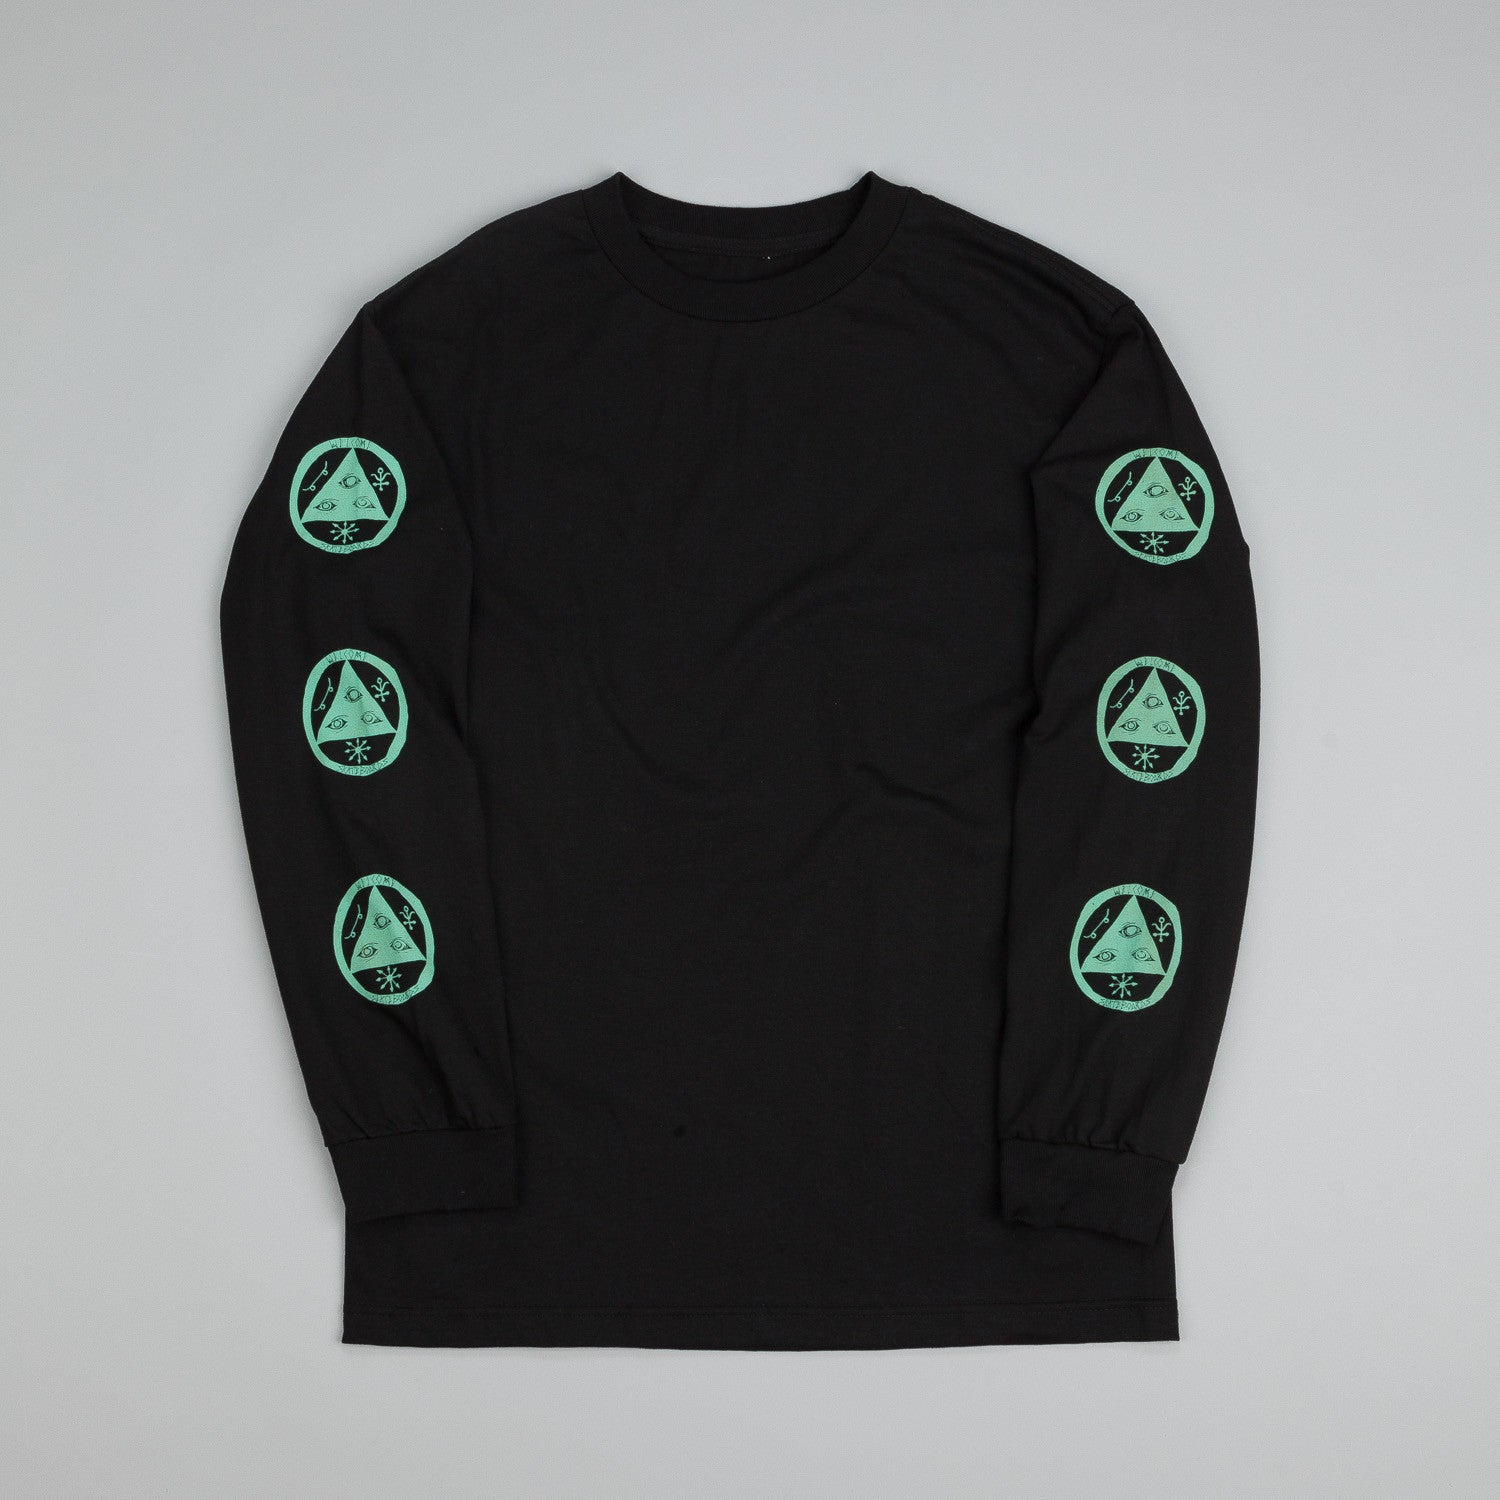 Welcome Talisman Longsleeve T Shirt Black